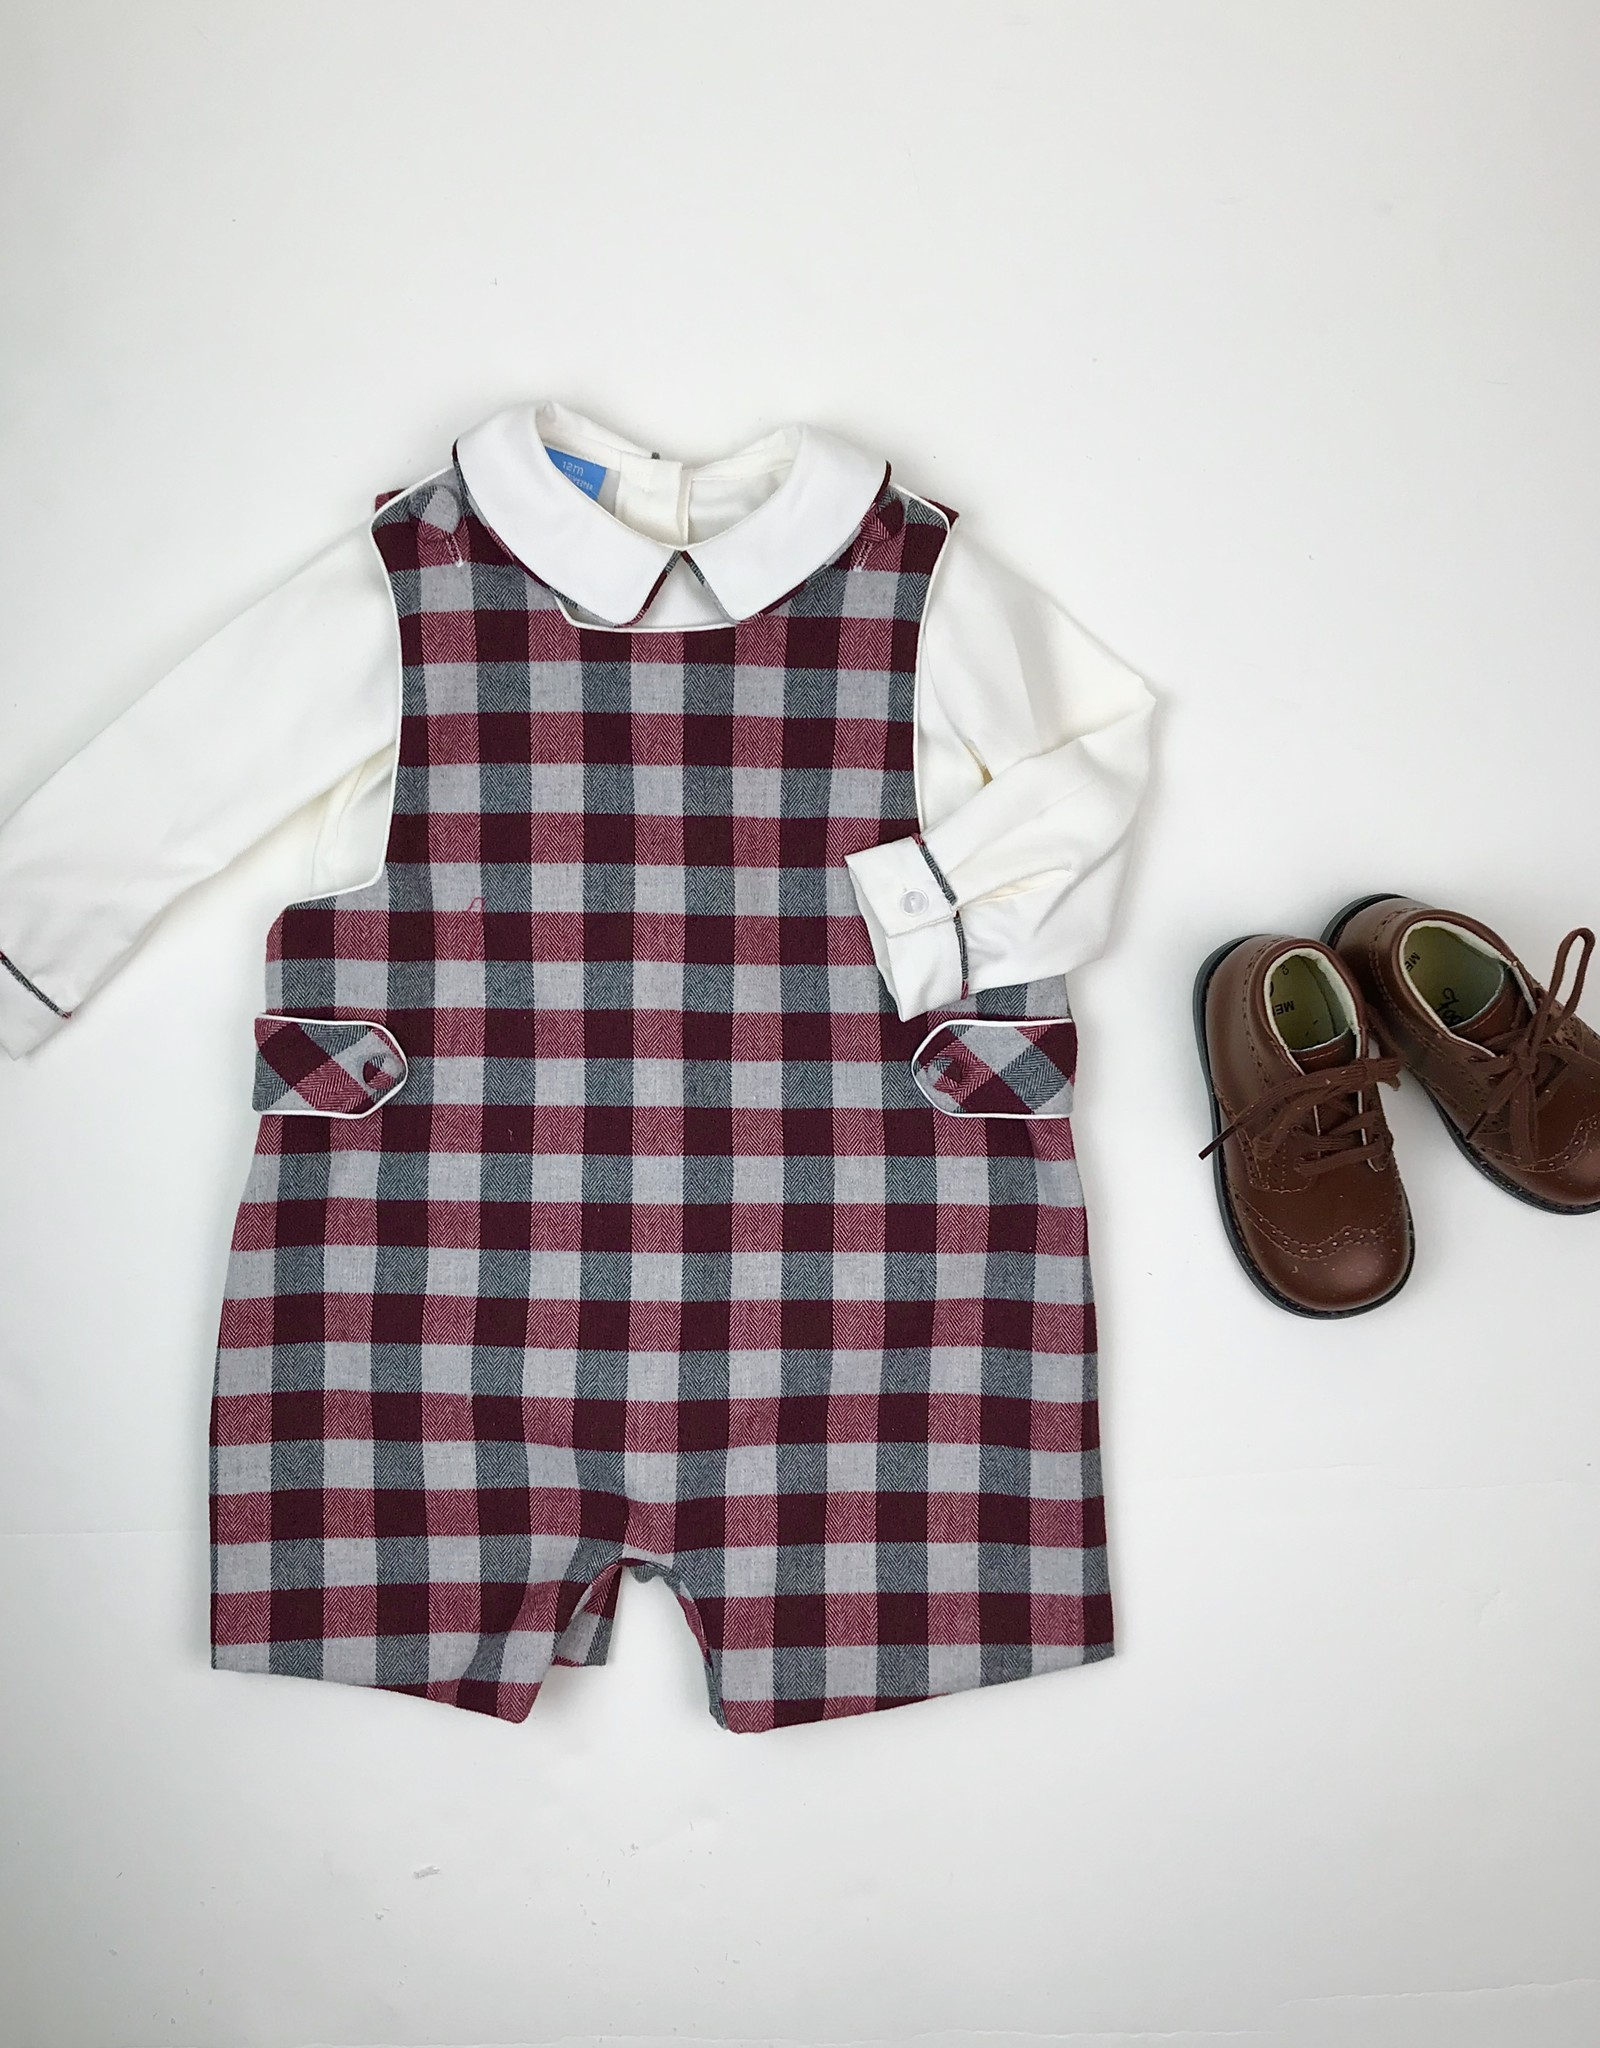 Anavini Infant Boys Burgundy/Gray Plaid Jon Jon w/ Shirt